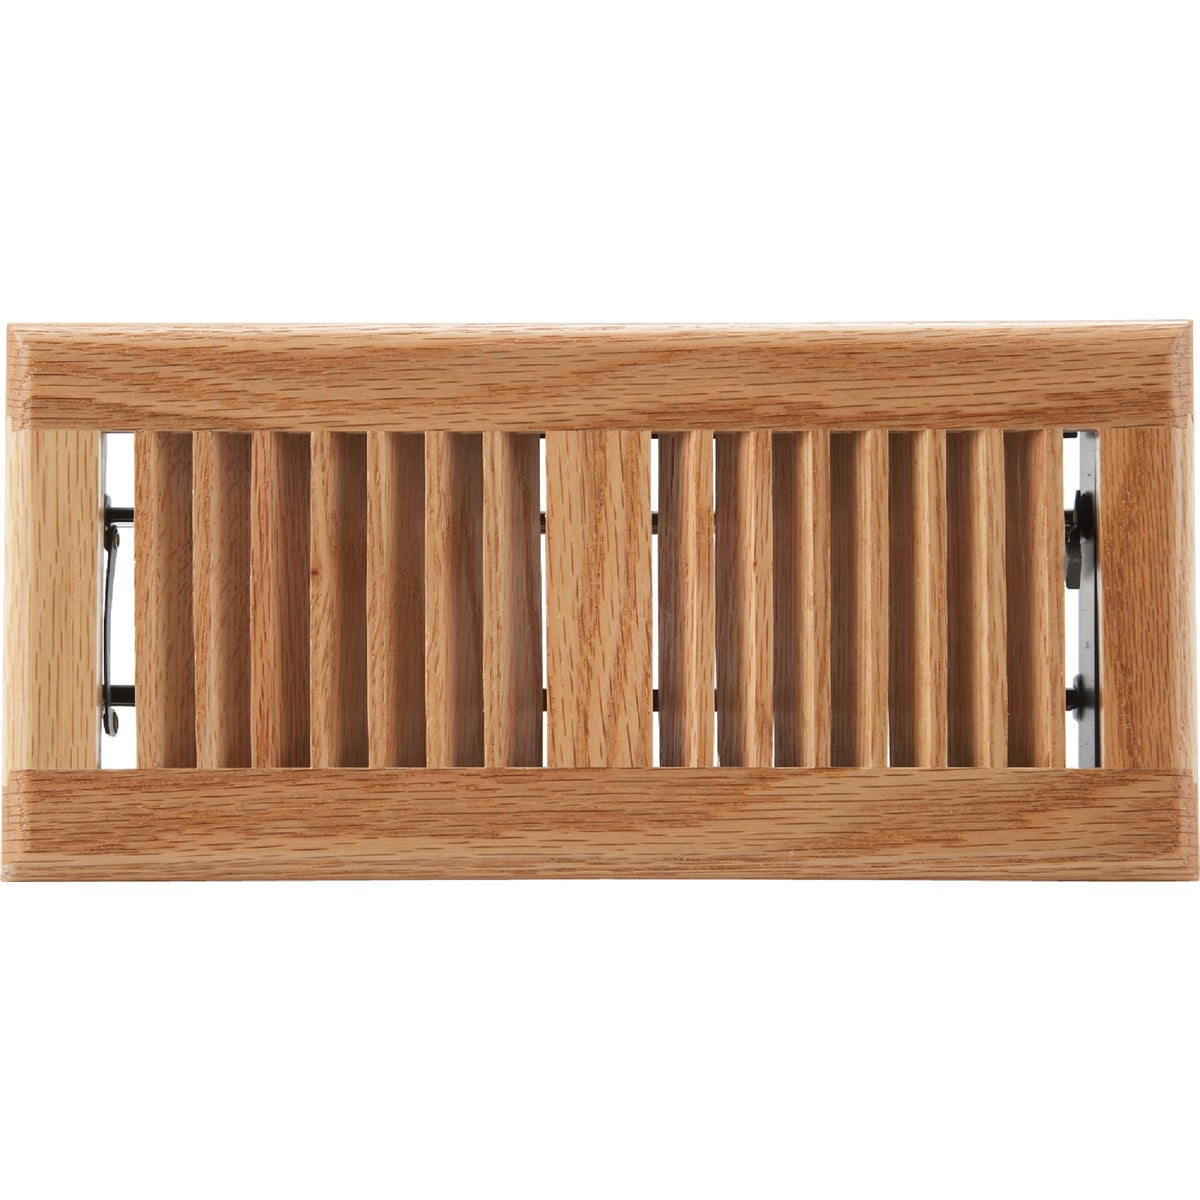 4X10 LT OAK FLR REGISTER